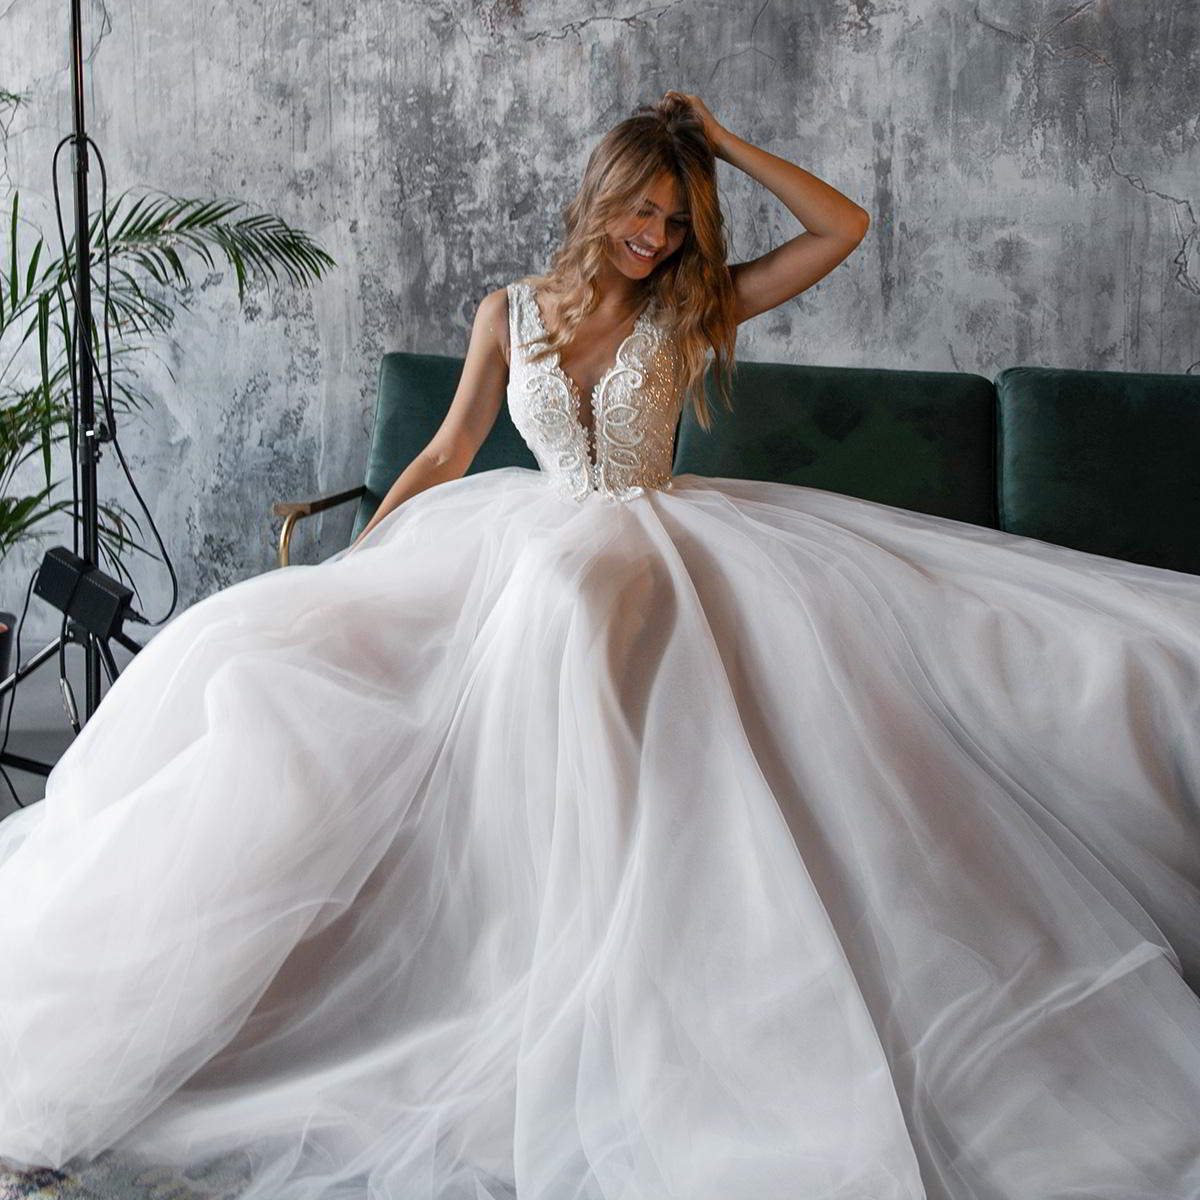 olivia bottega 2020 bridal wedding inspirasi featured wedding gowns dresses and collection